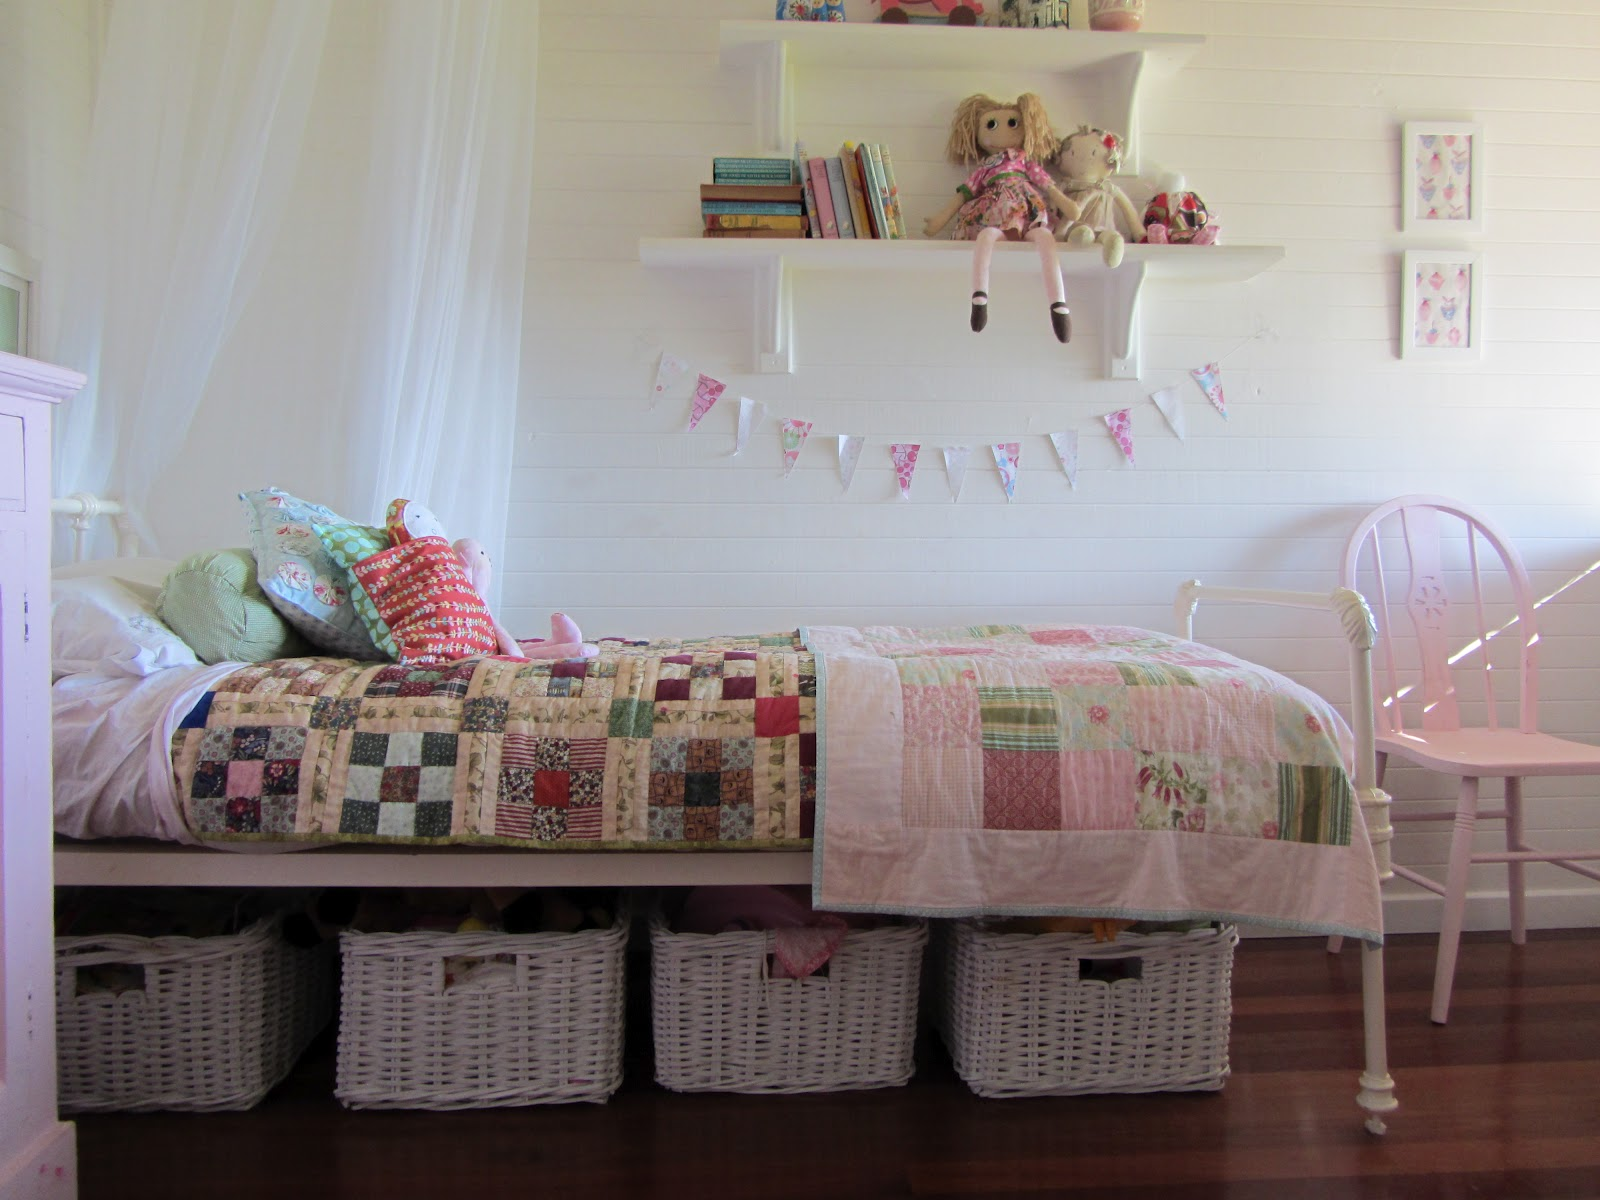 Decorating and Storage Ideas for a Little Girlu0027s Room & thom haus handmade: Decorating and Storage Ideas for a Little Girlu0027s ...